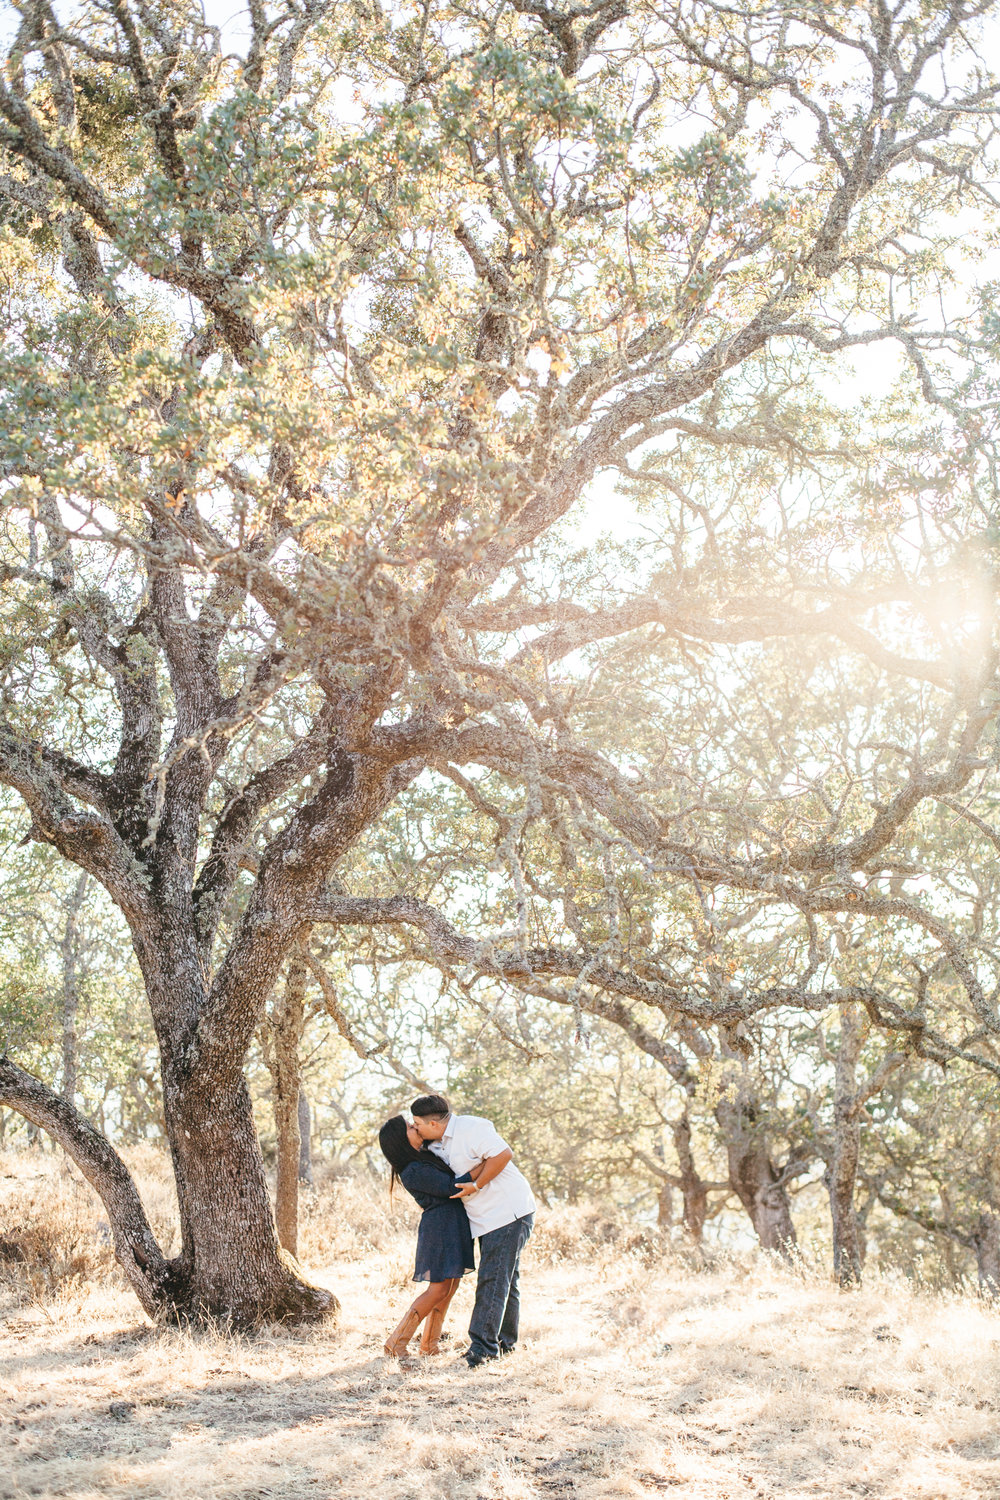 chris-diana-engagement-session-in-walnut-creek-california-10